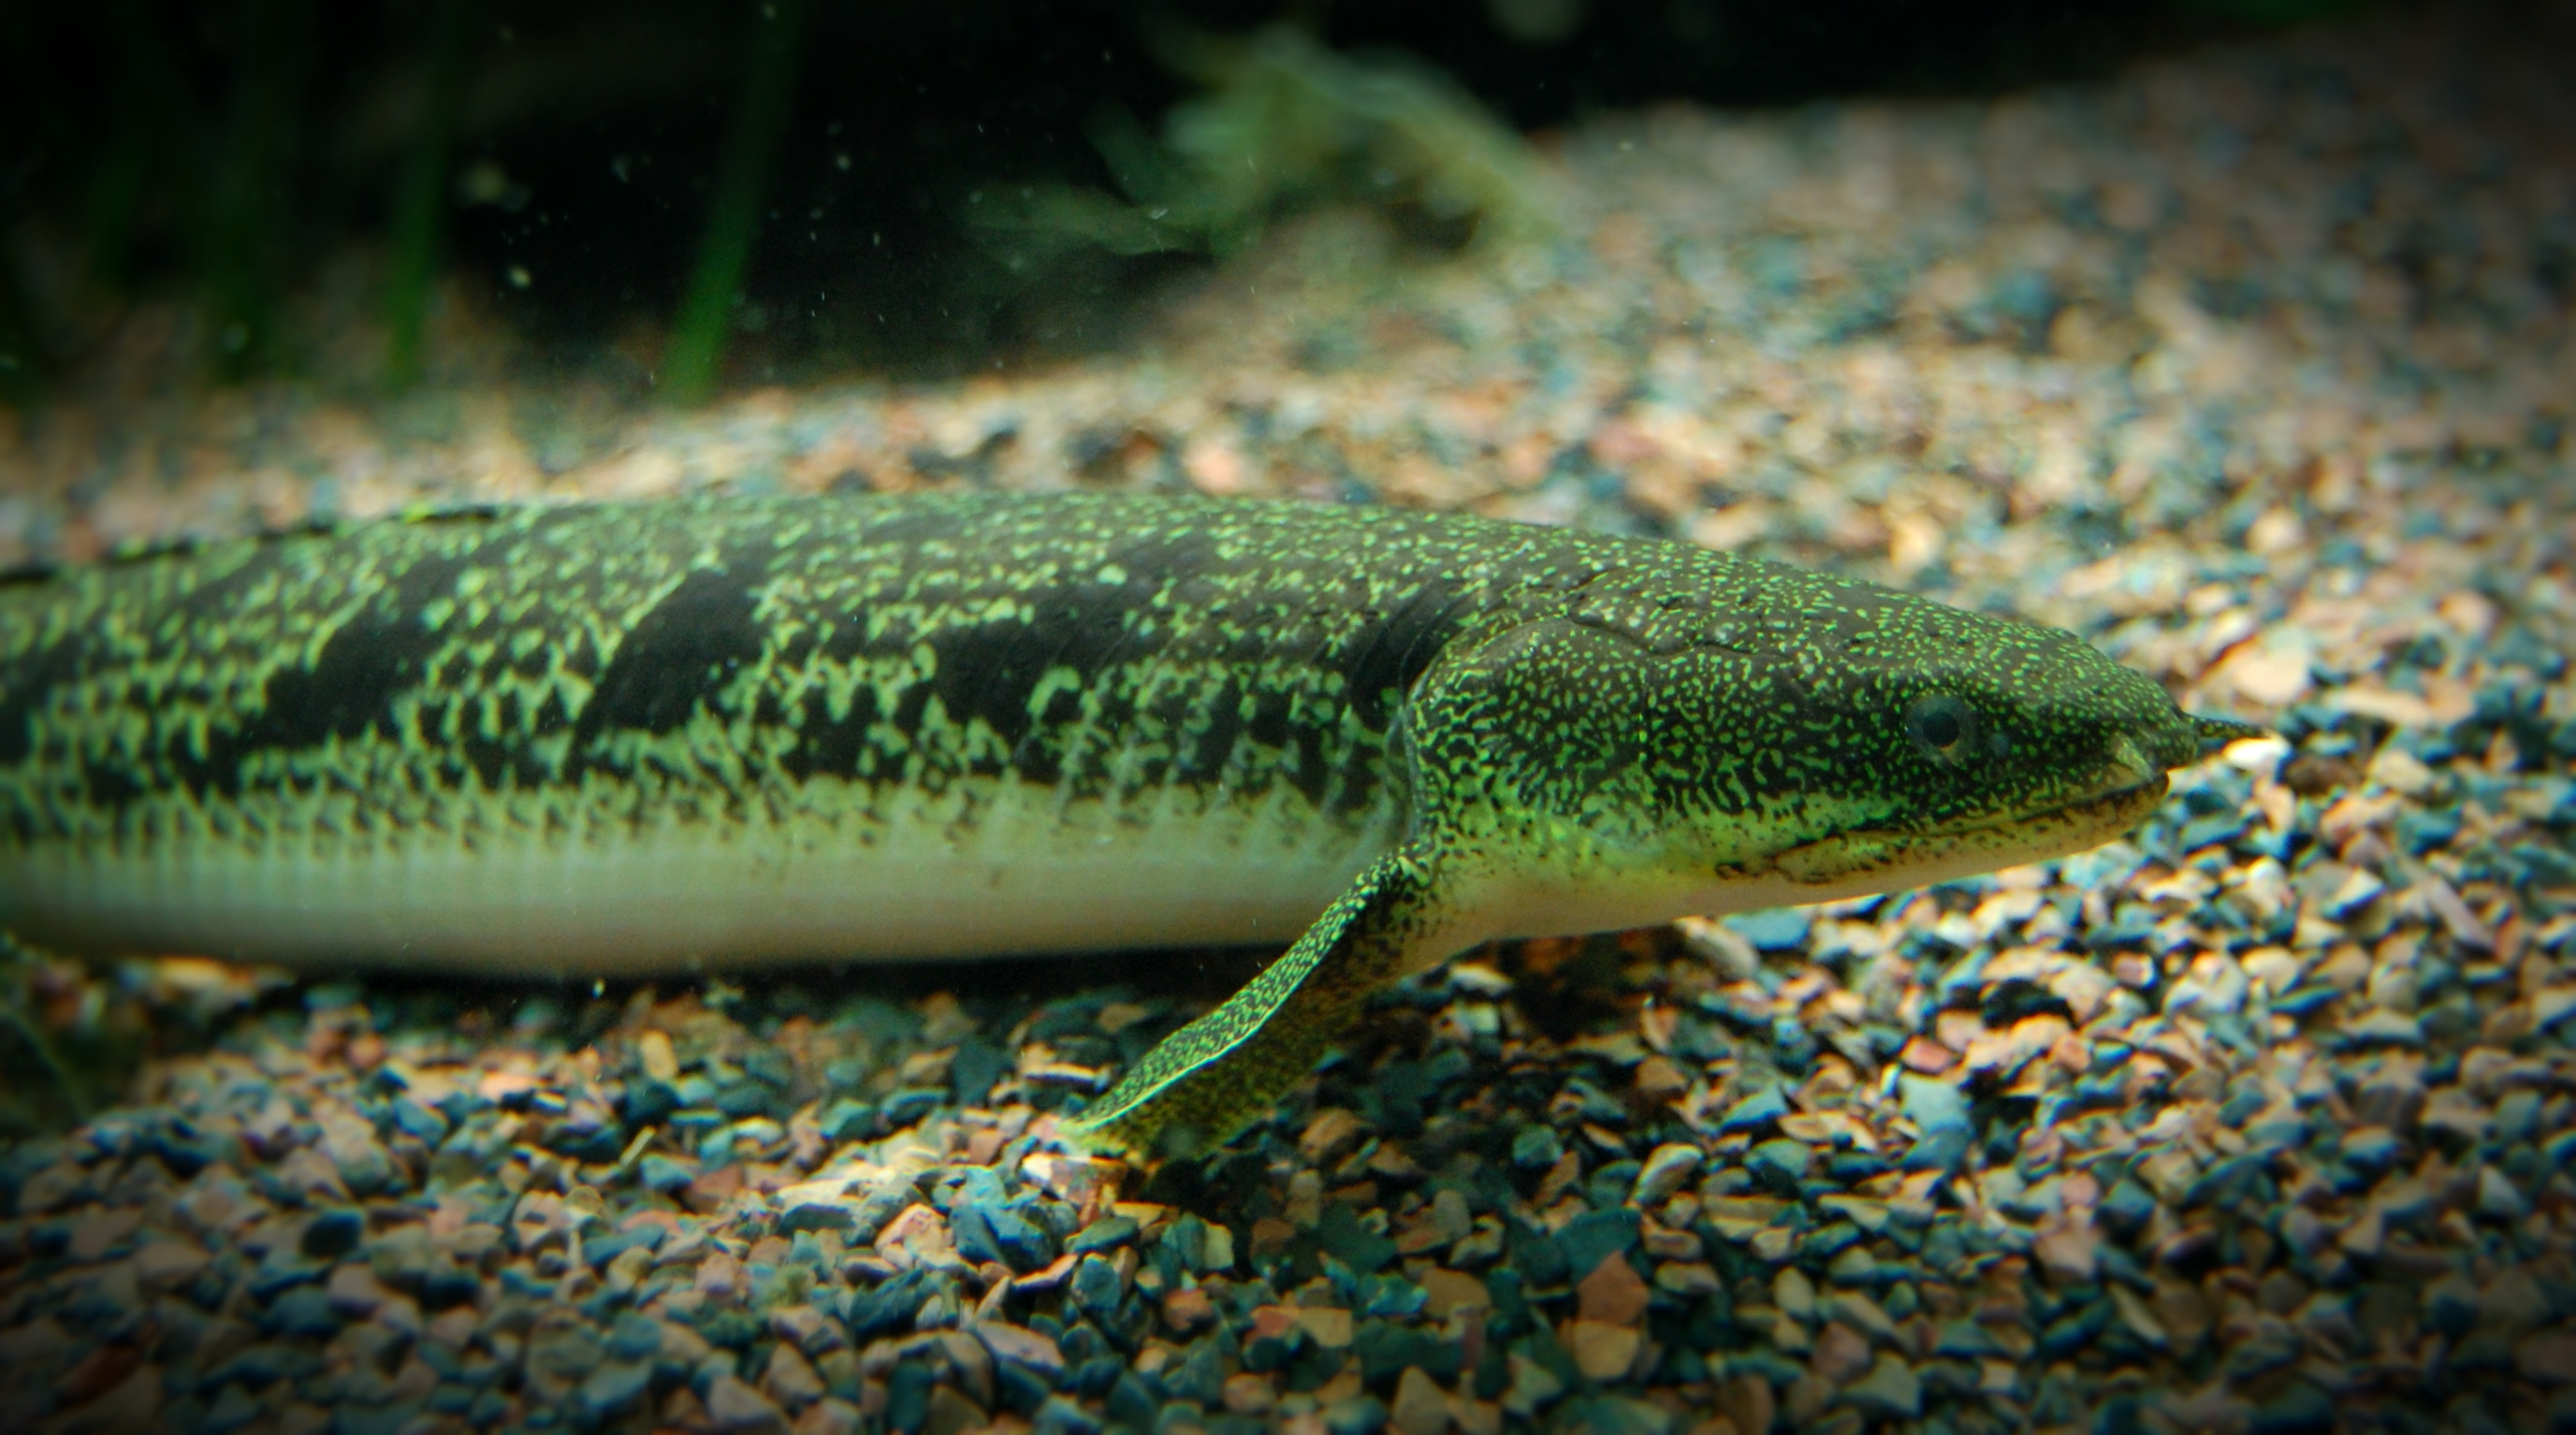 Meet Polypterus, The Dinosaur Eel!